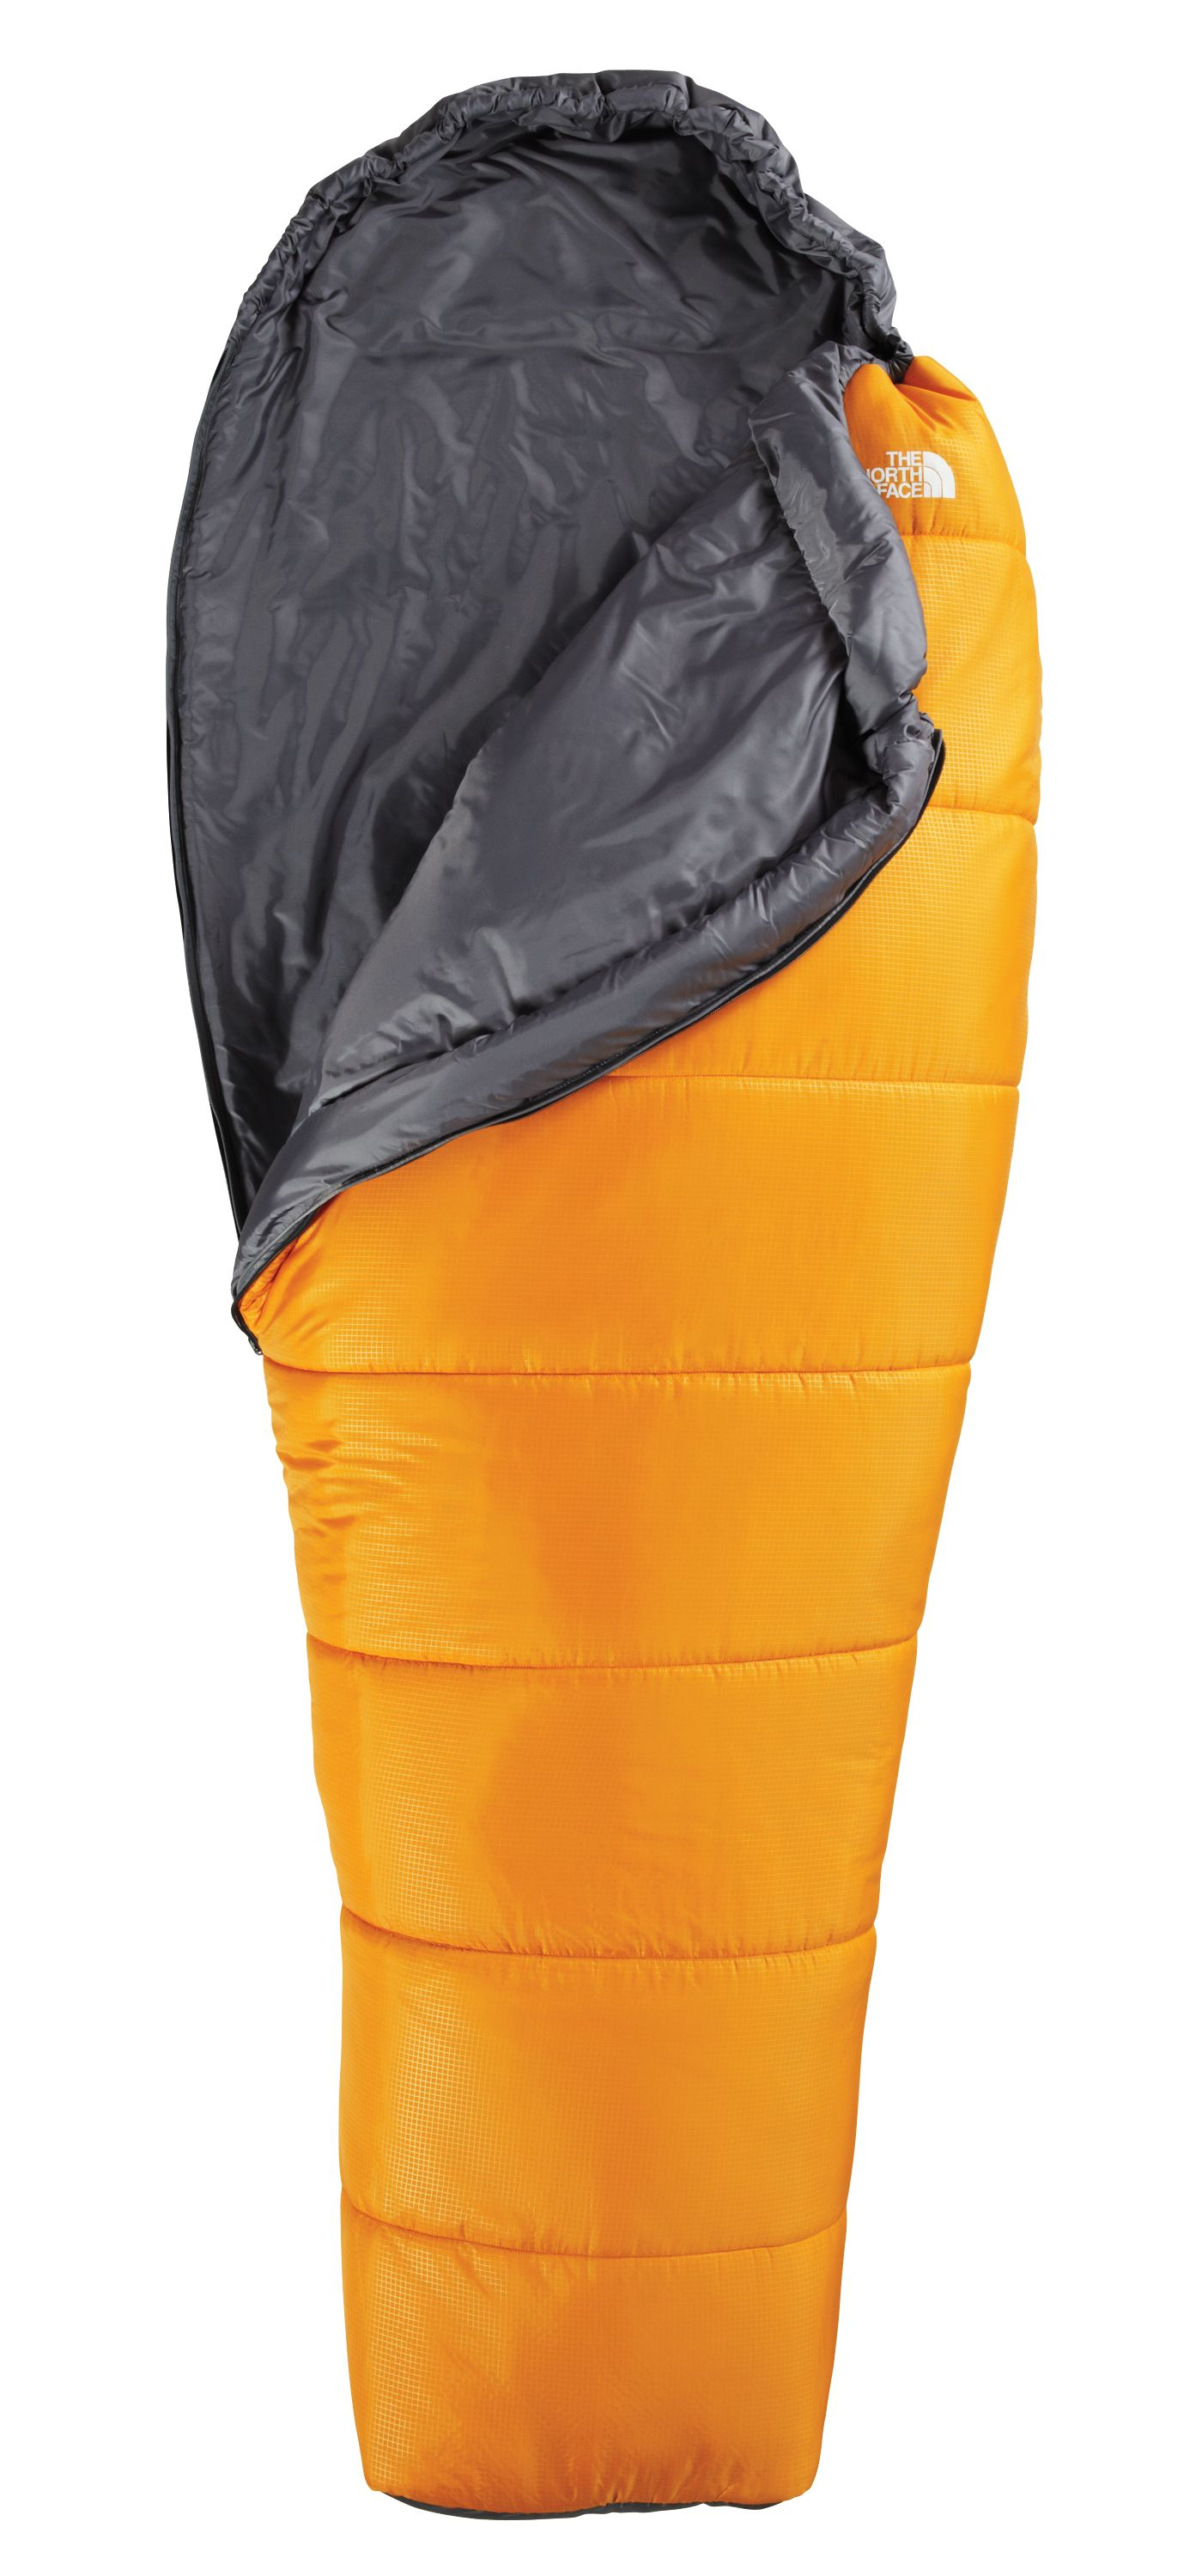 The North Face Wasatch 30°  Sleeping Bag